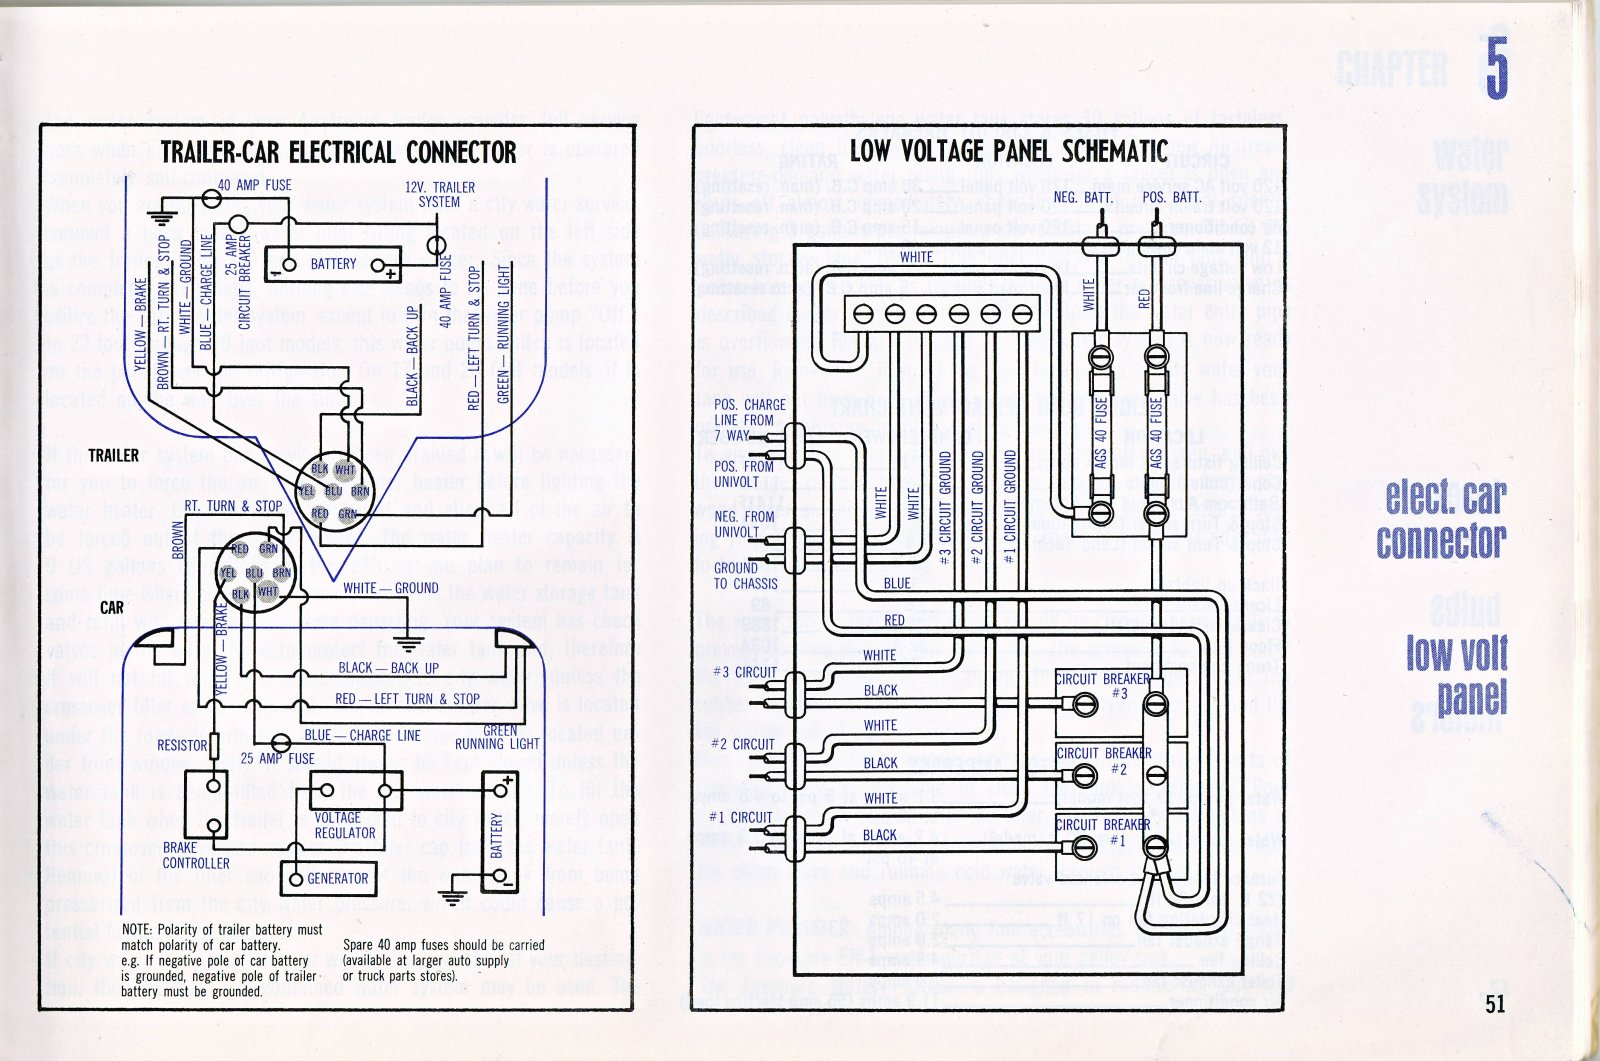 Vintage airstream wiring schematics - Airstream Forums on